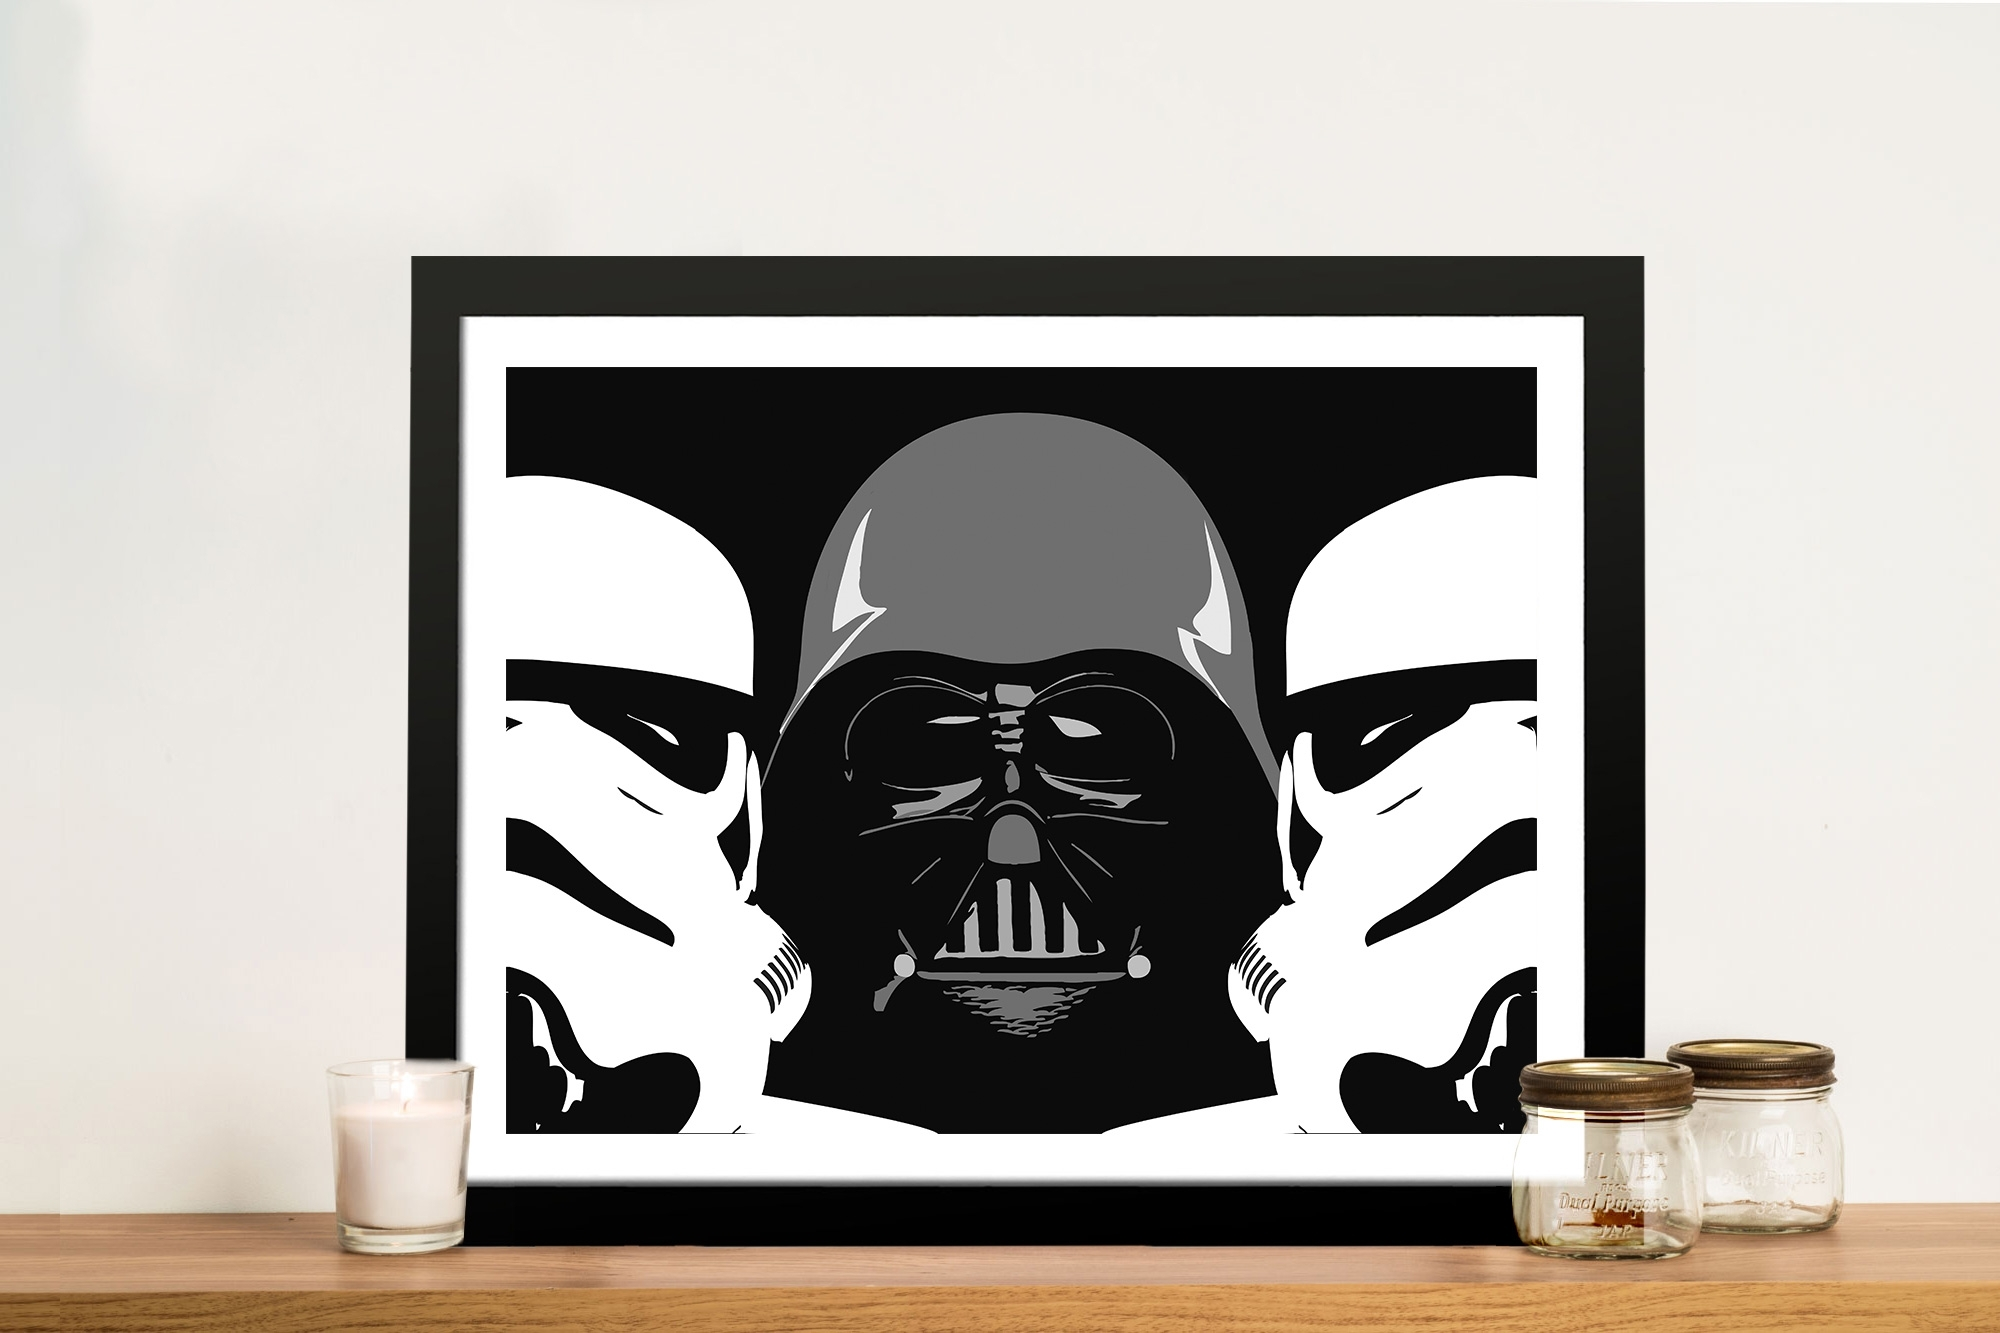 Three Amigos Darth Vader Wall Art - Canvas Prints Australia pertaining to Darth Vader Wall Art (Image 20 of 20)